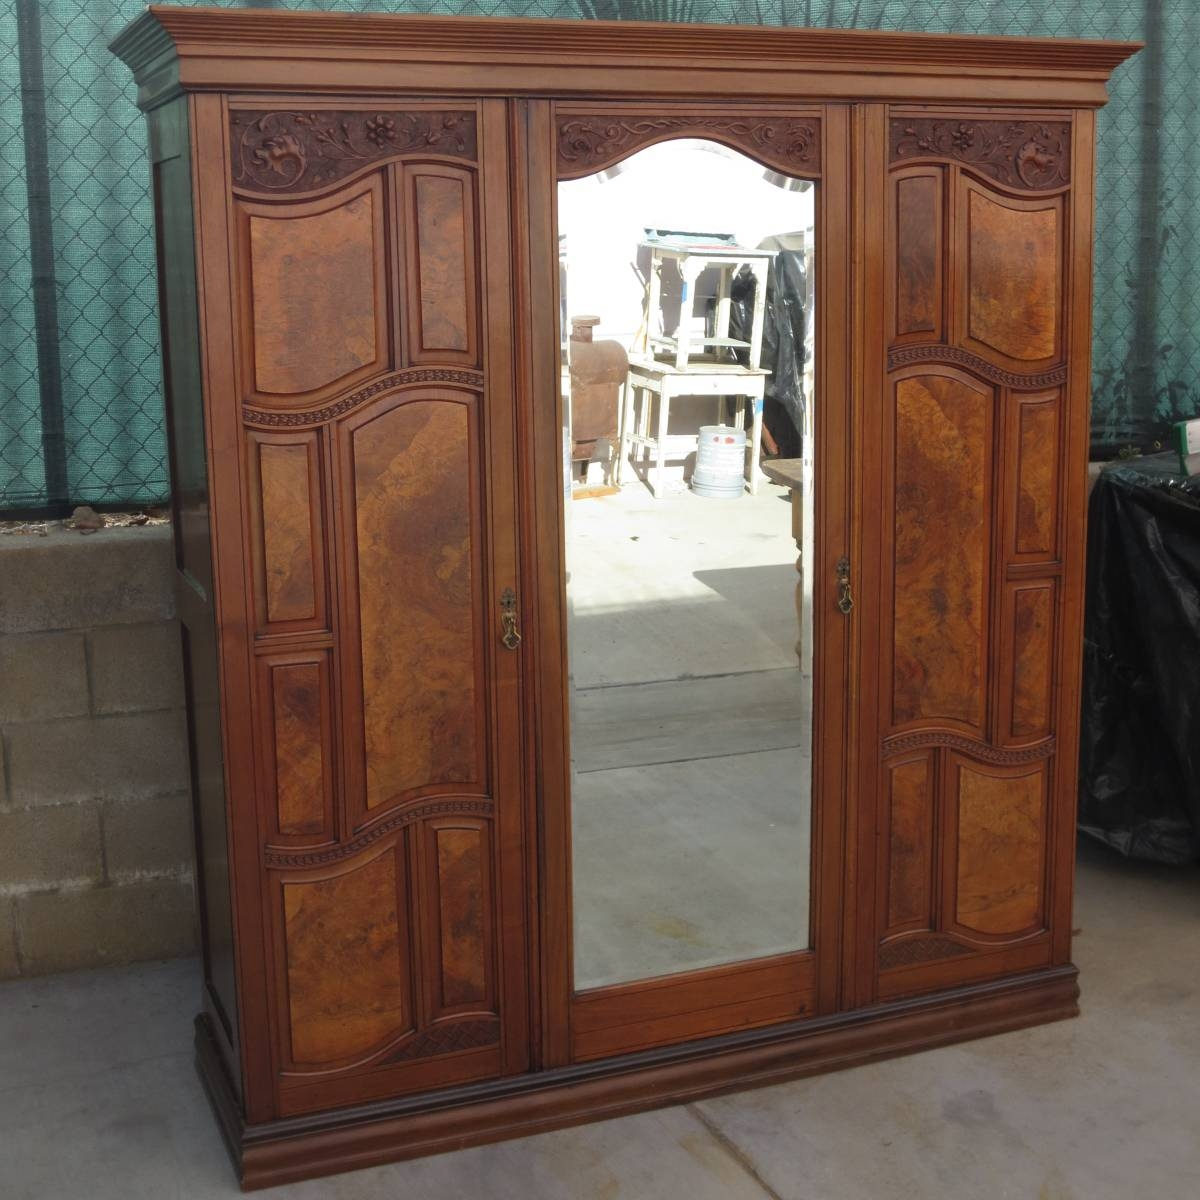 Antique Armoires, Antique Wardrobes, And Antique Furniture From regarding Victorian Wardrobes for Sale (Image 3 of 15)